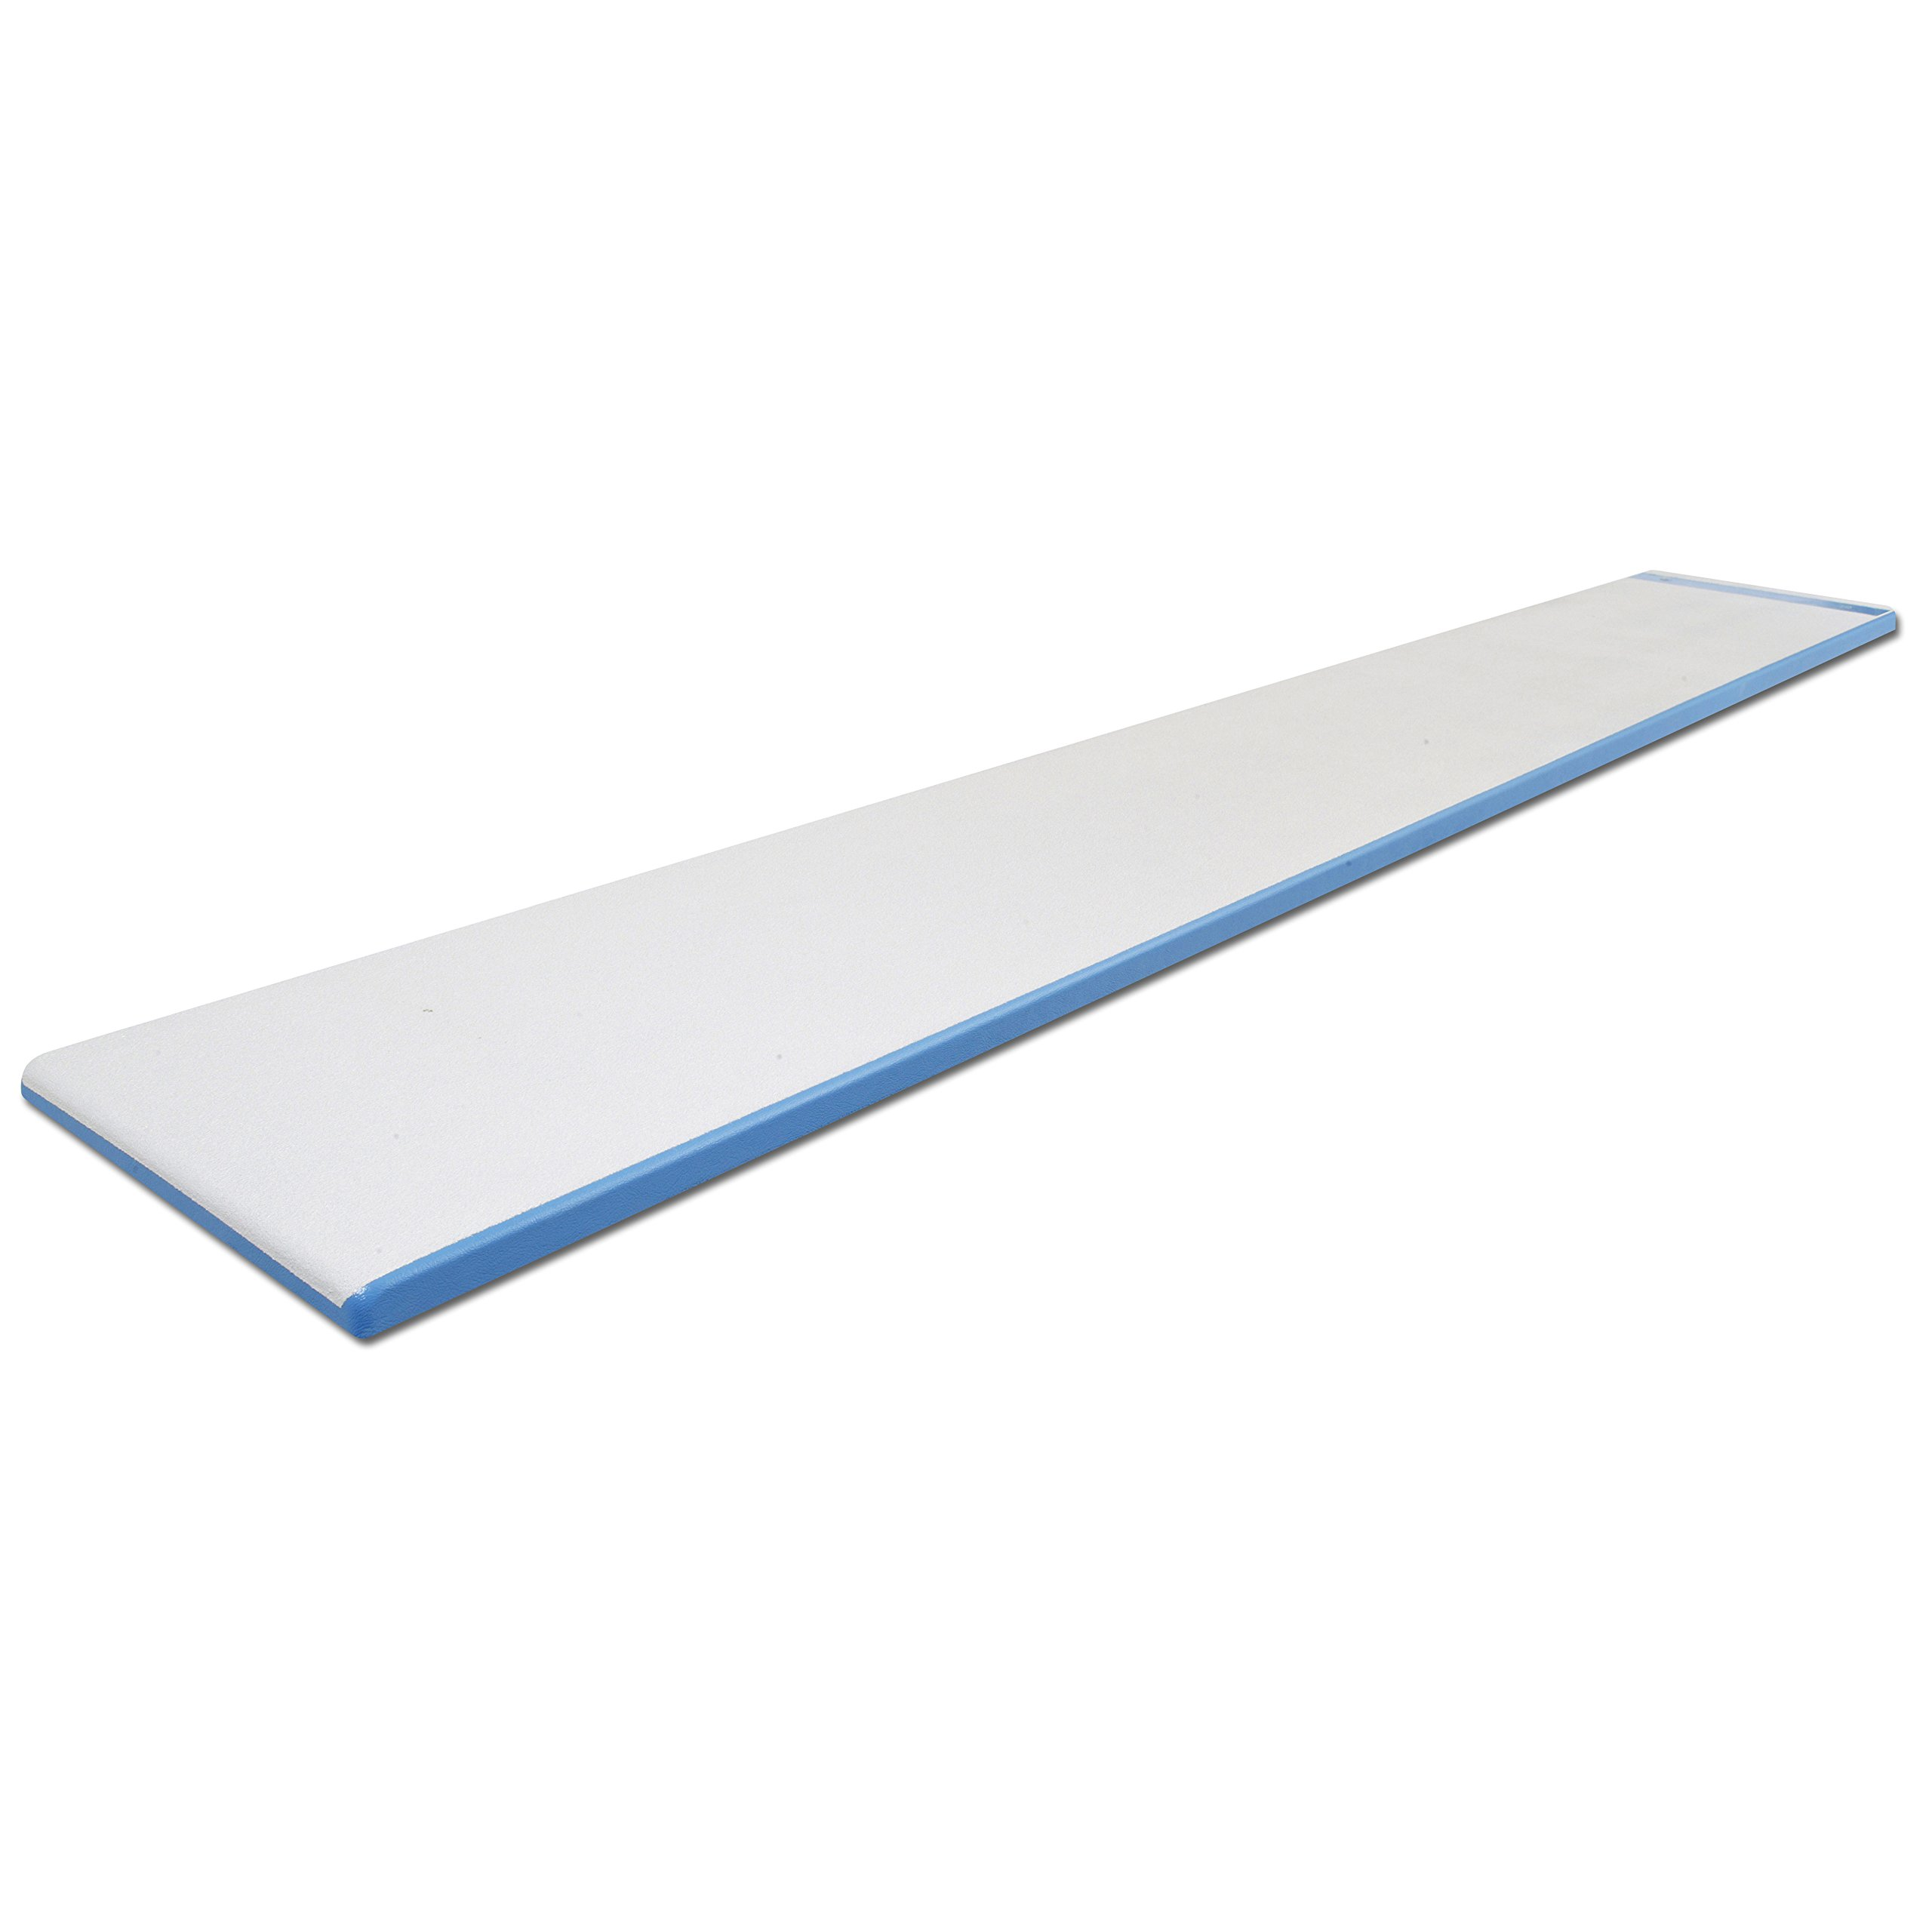 S.R. Smith 6 Foot Frontier III Marine Blue Replacement Pool Diving Board - 66-209-596S3 by S.R. Smith